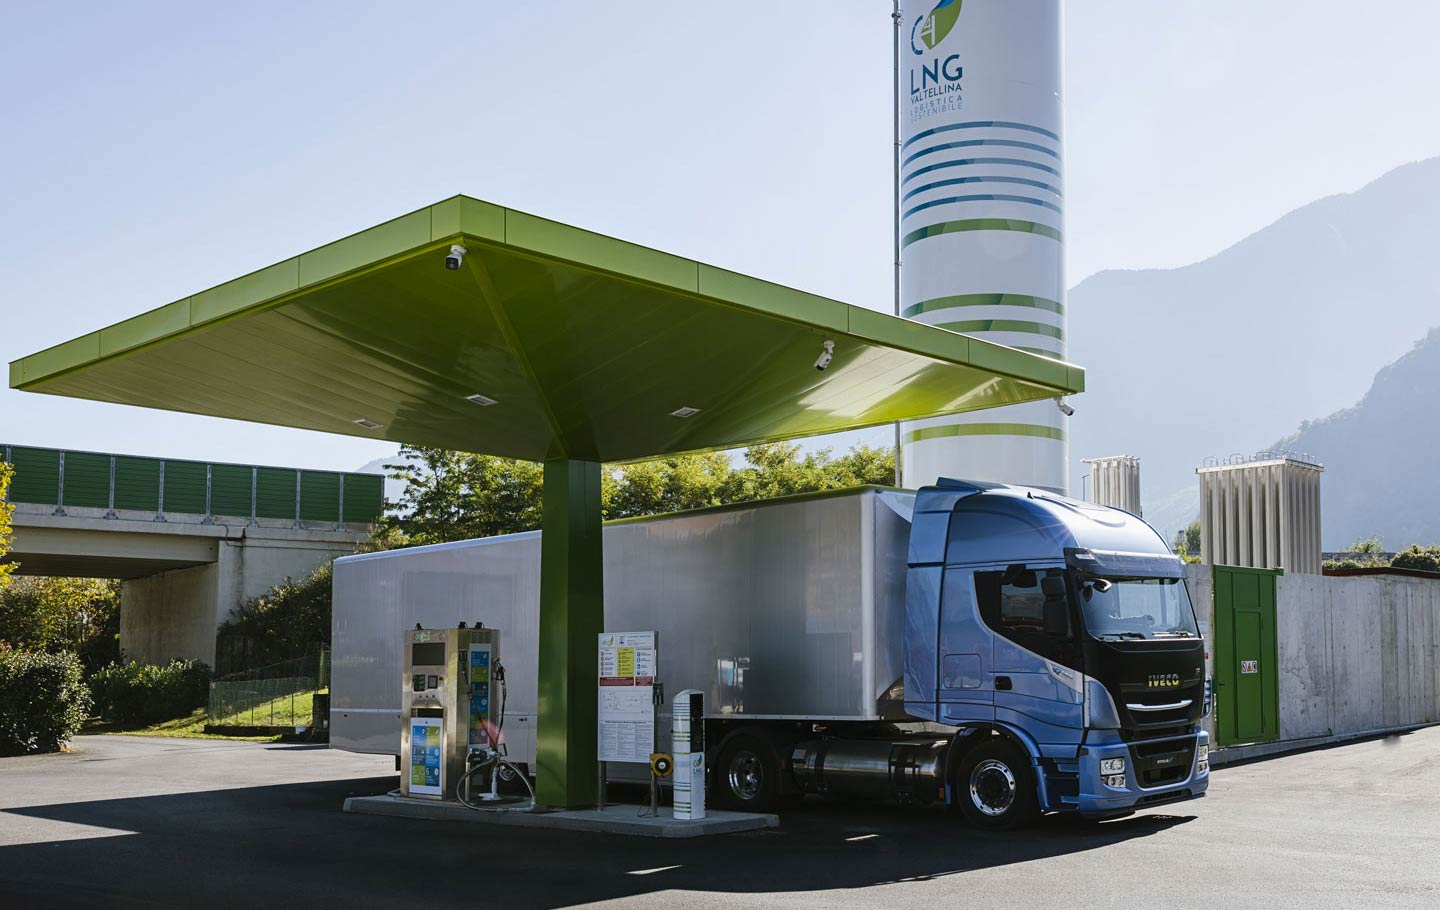 Biométhane : les garanties d'origine du GNL carburant en danger